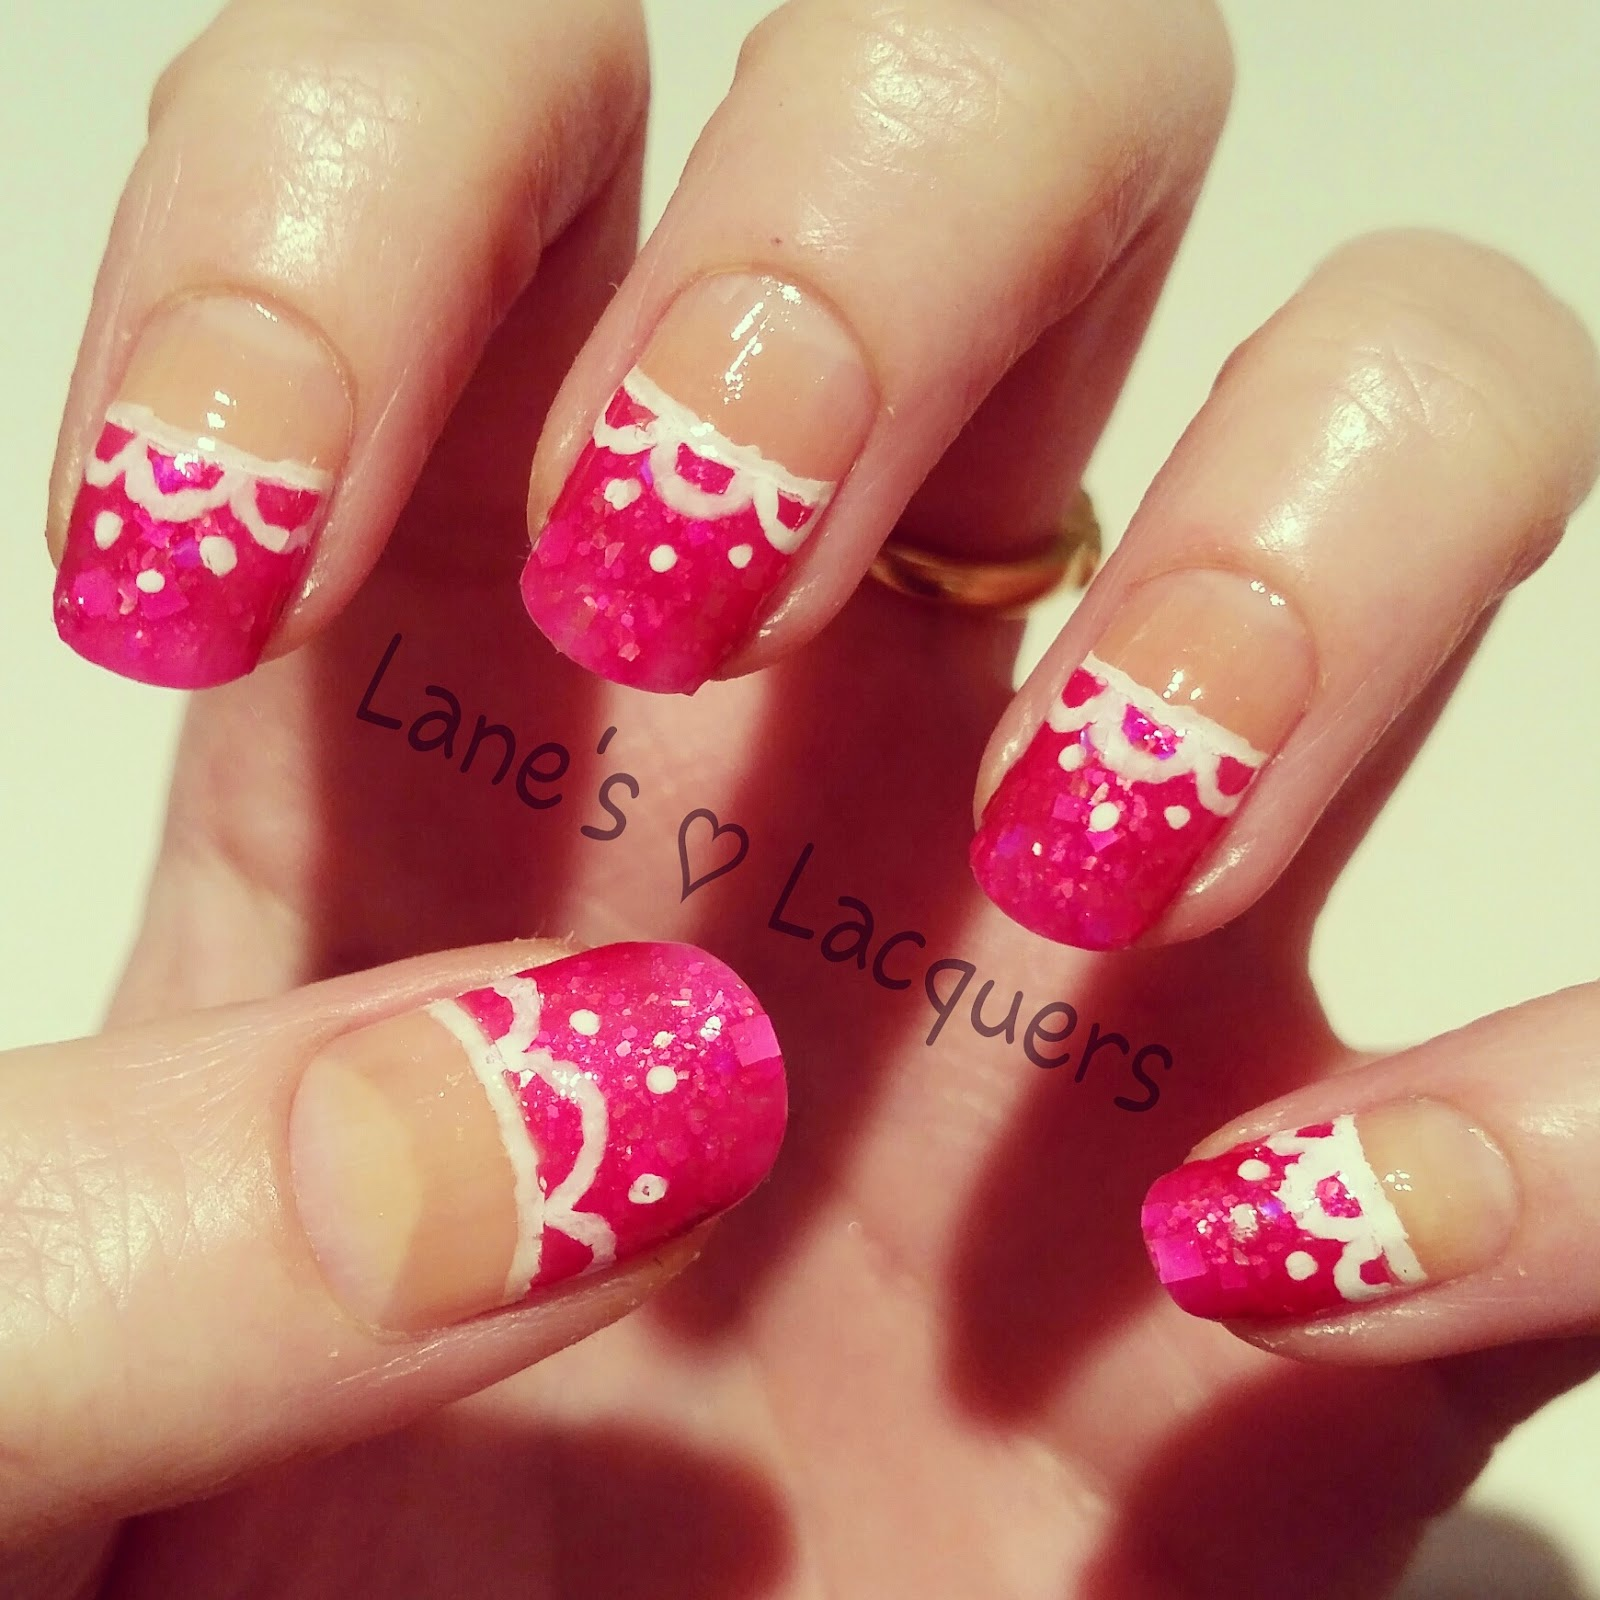 hare-polish-for-the-love-of-lisa-lace-nail-art